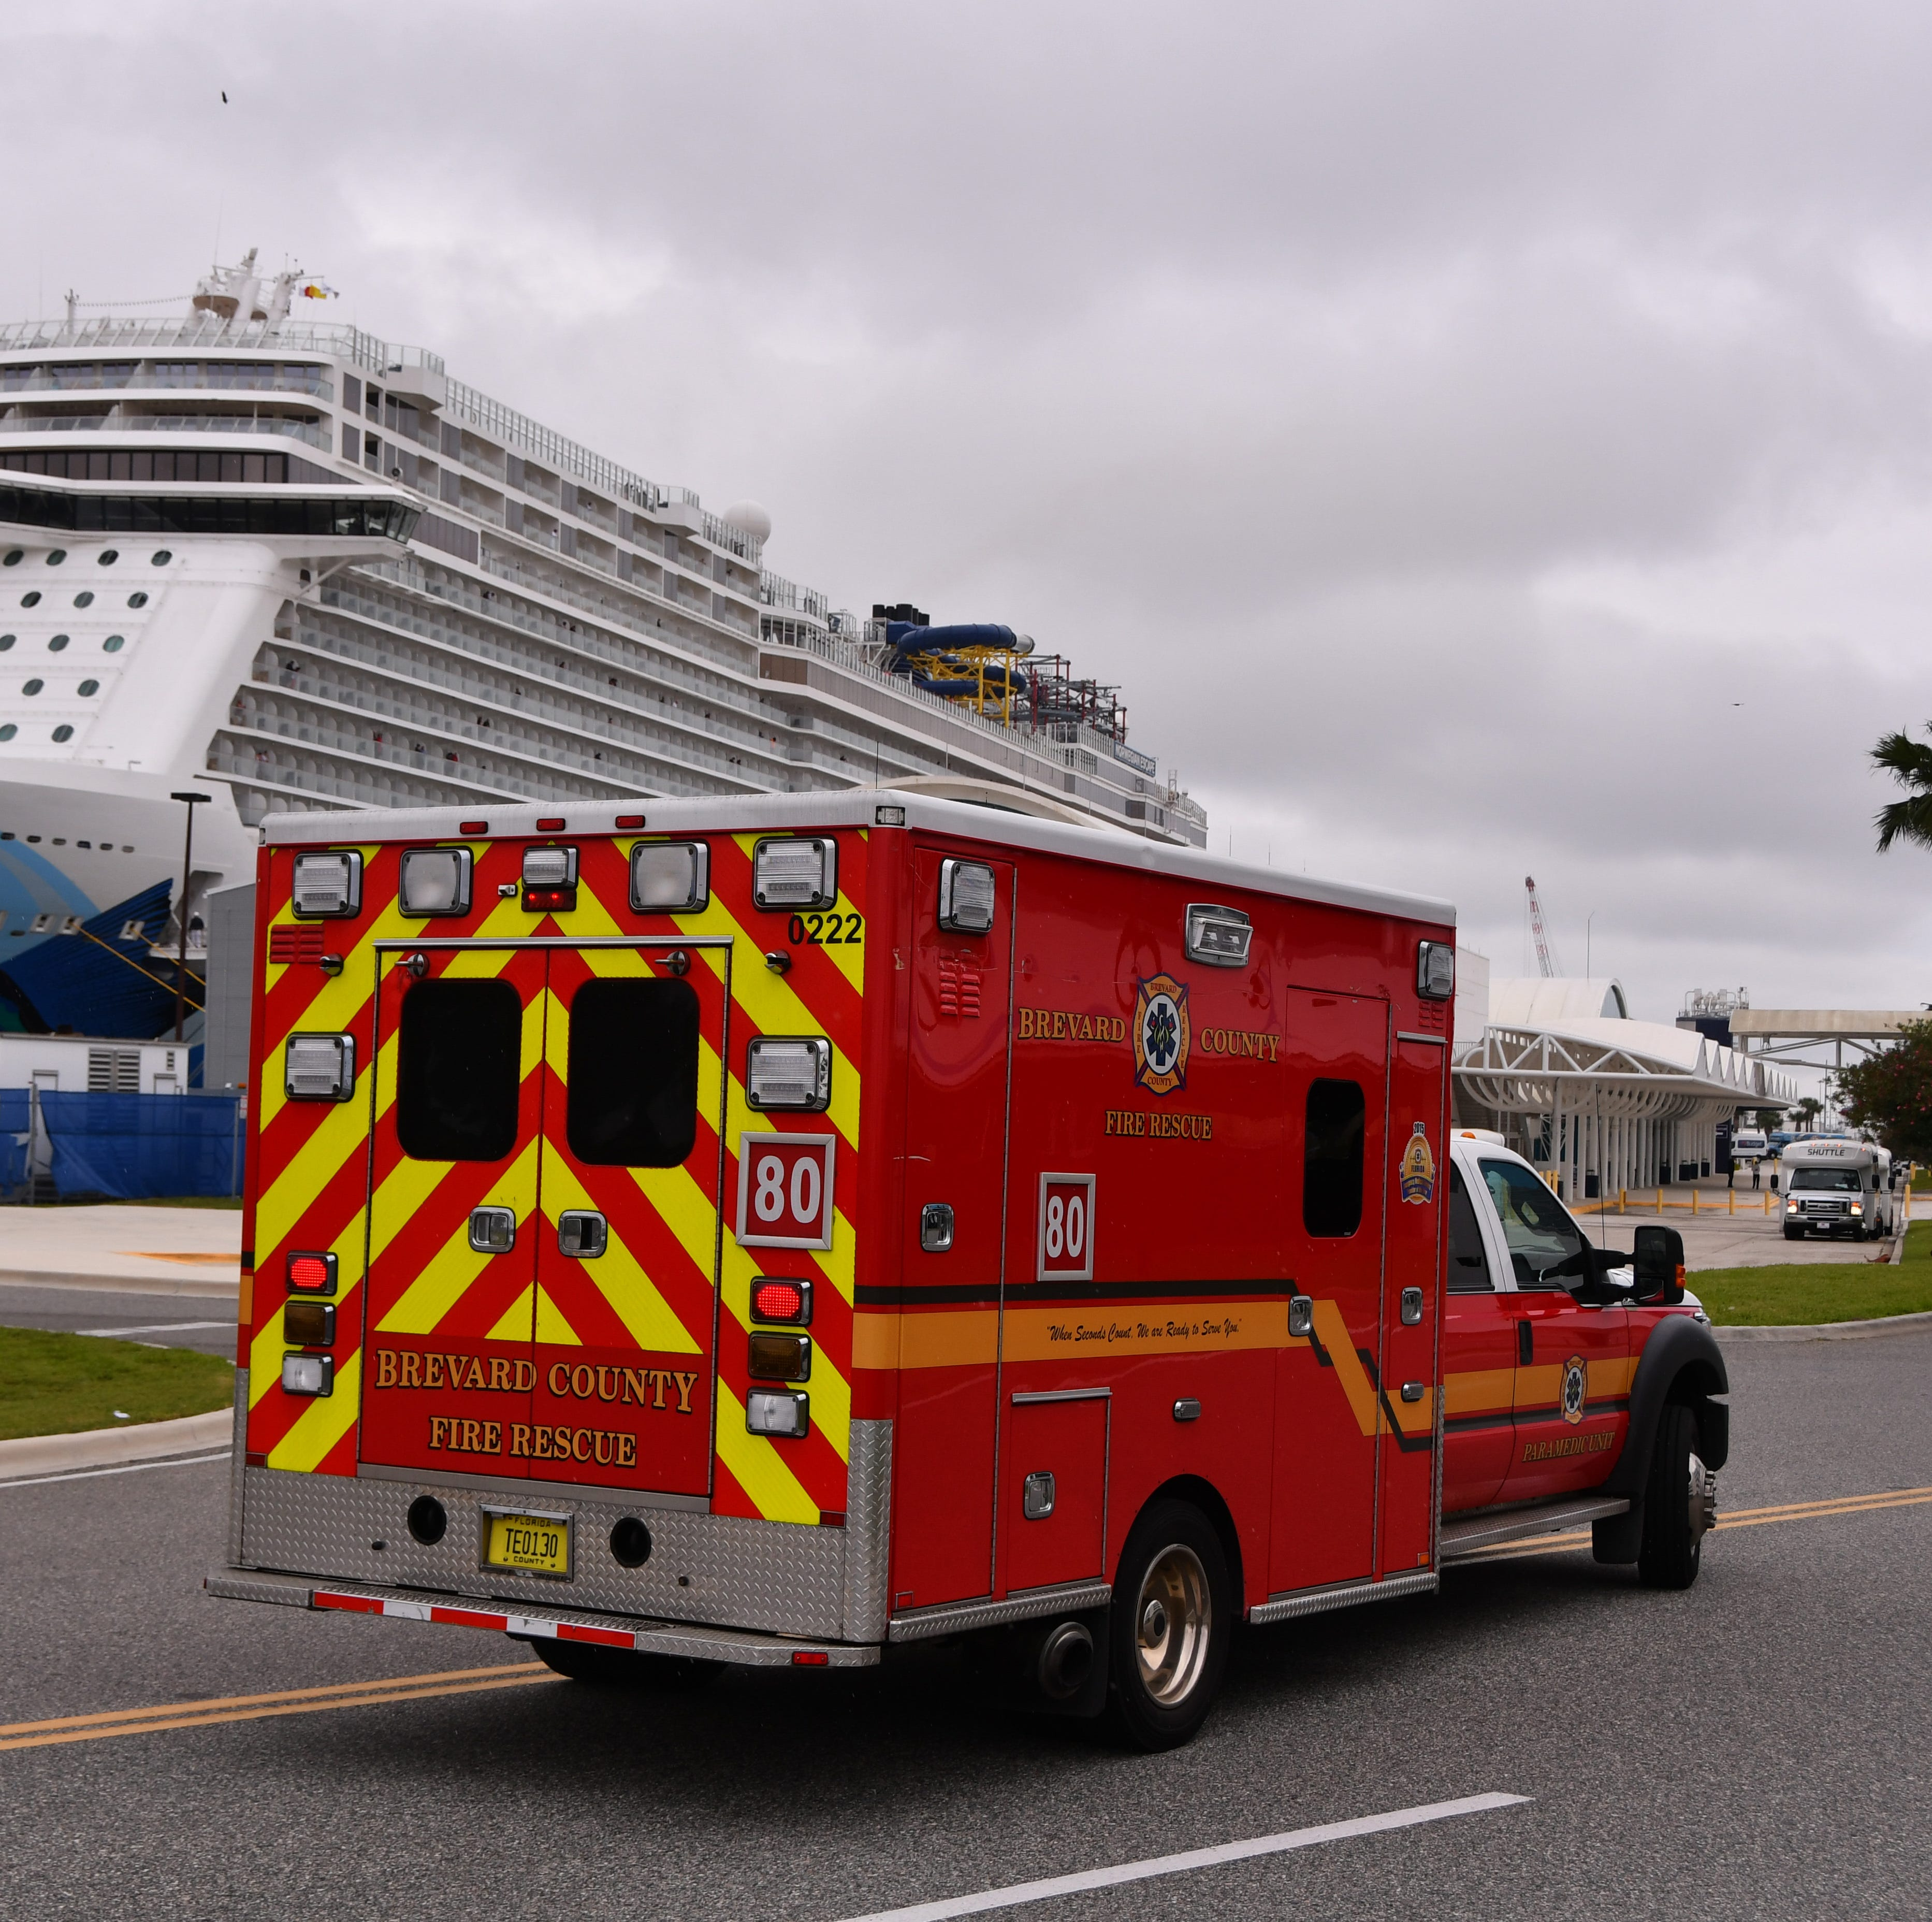 Report: South Jersey couple among those saved from nightmare cruise in Norway